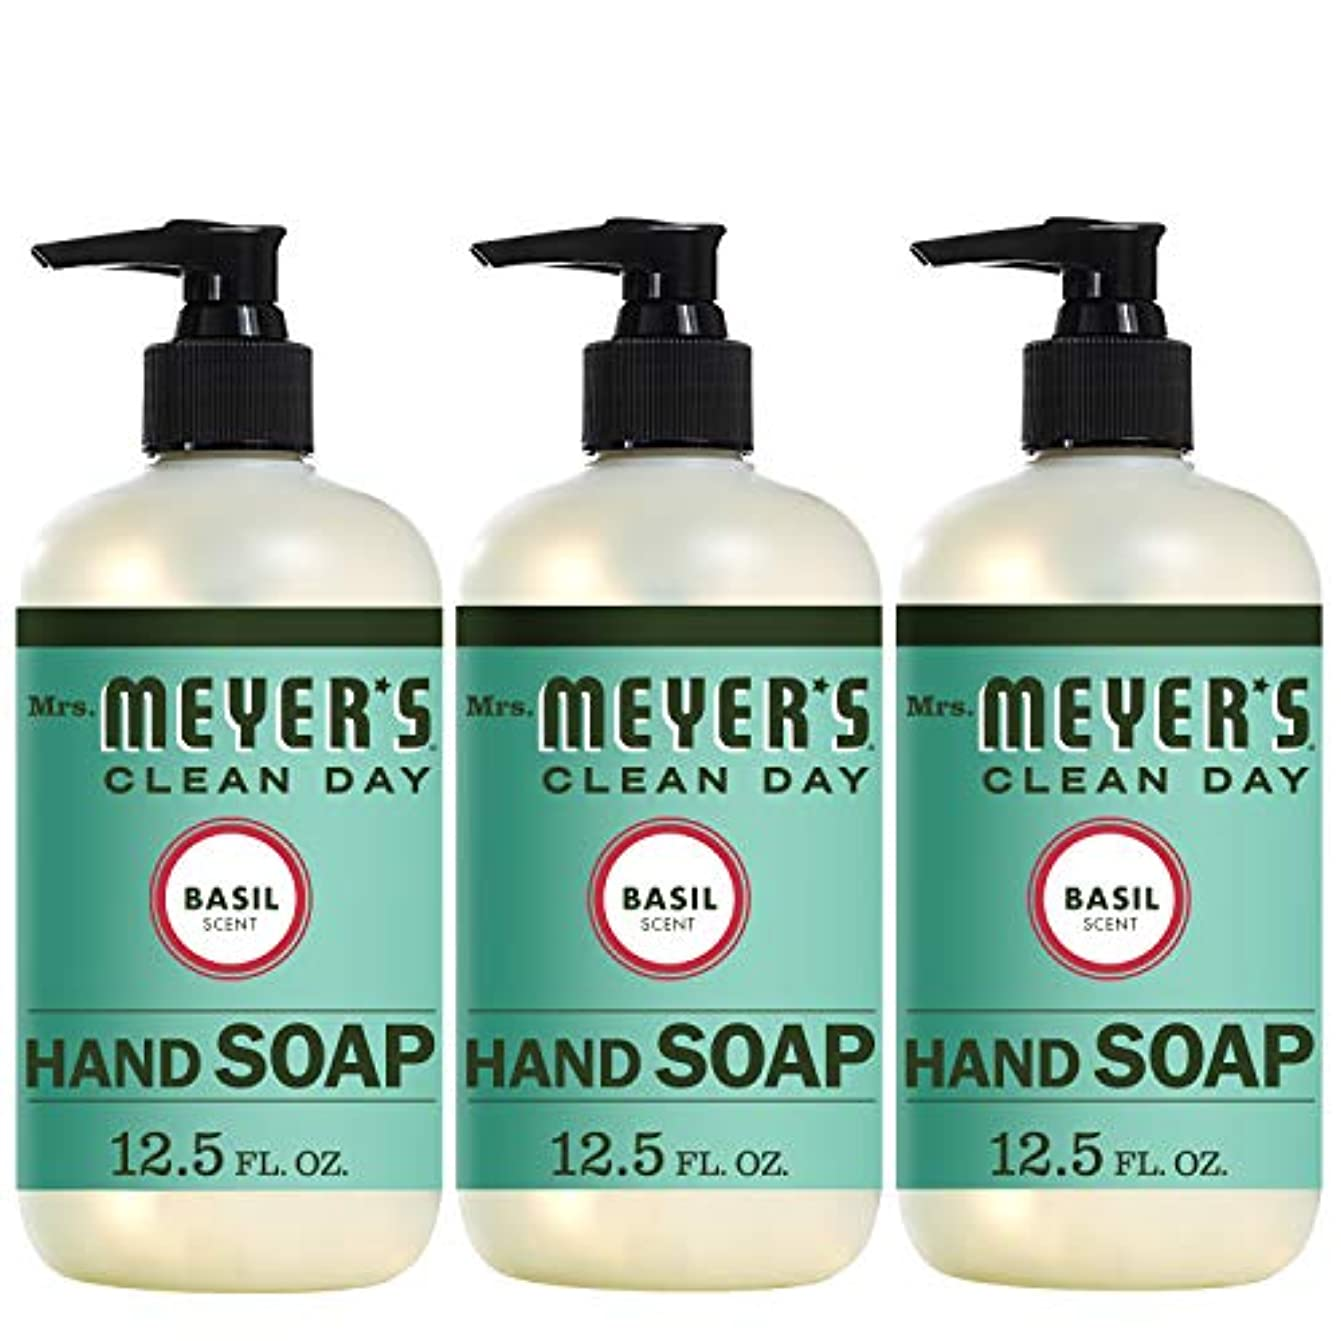 家庭エッセイ悩みLiquid Hand Soap - Basil - Case of 6-12.5 oz by Mrs. Meyer's